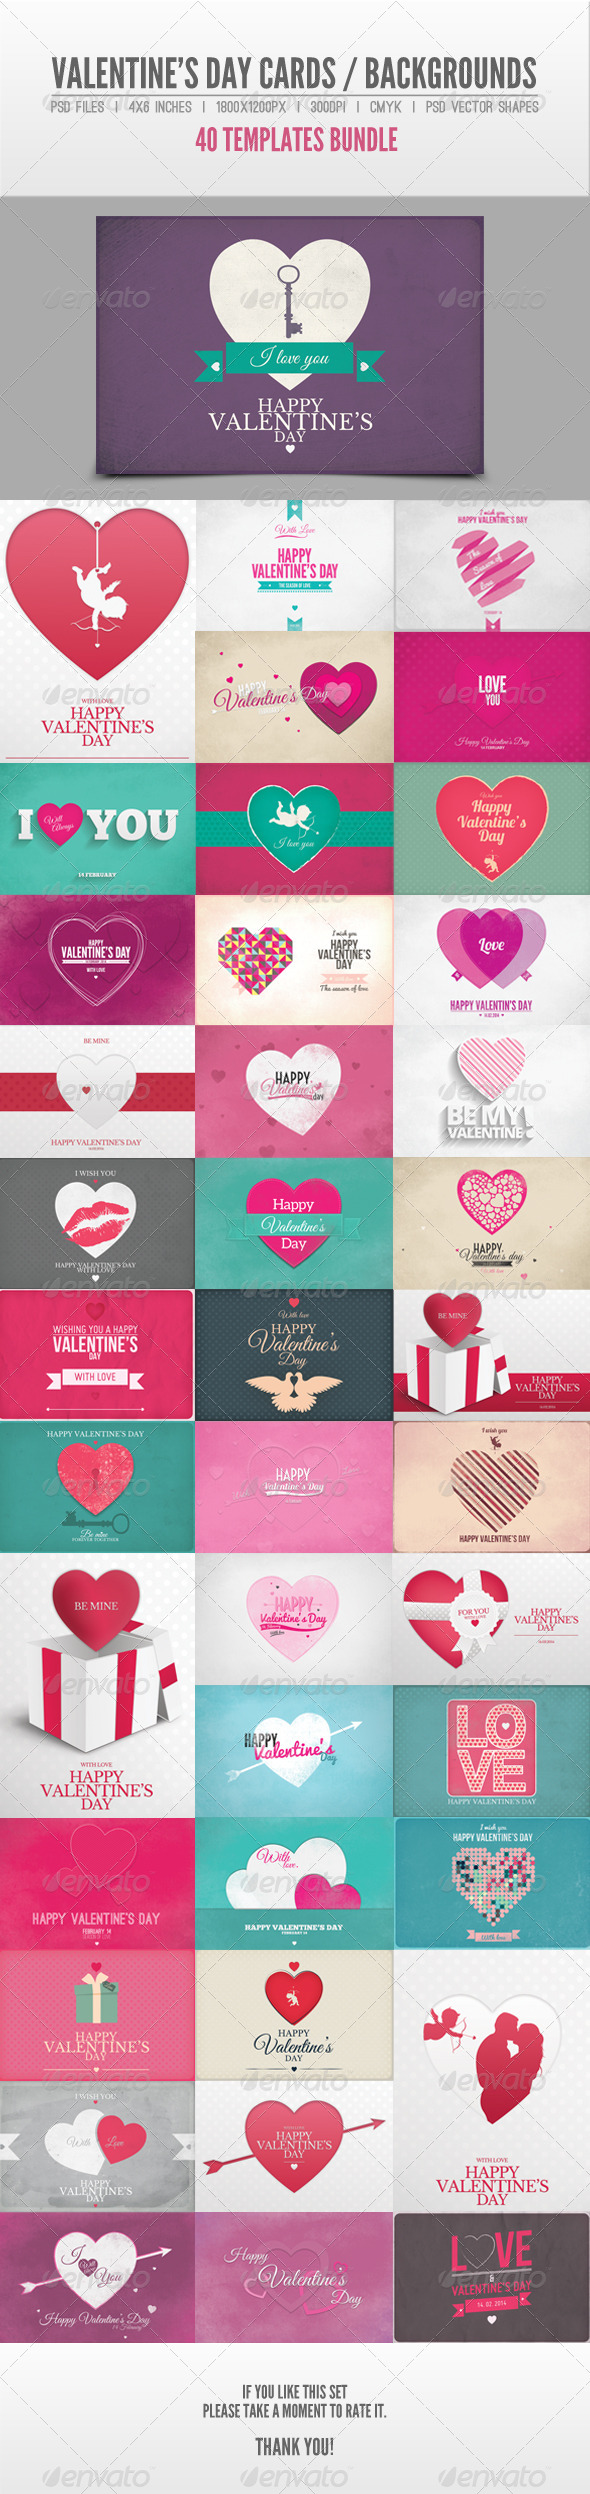 40 Valentine's Day Cards / Backgrounds Bundle - Backgrounds Graphics